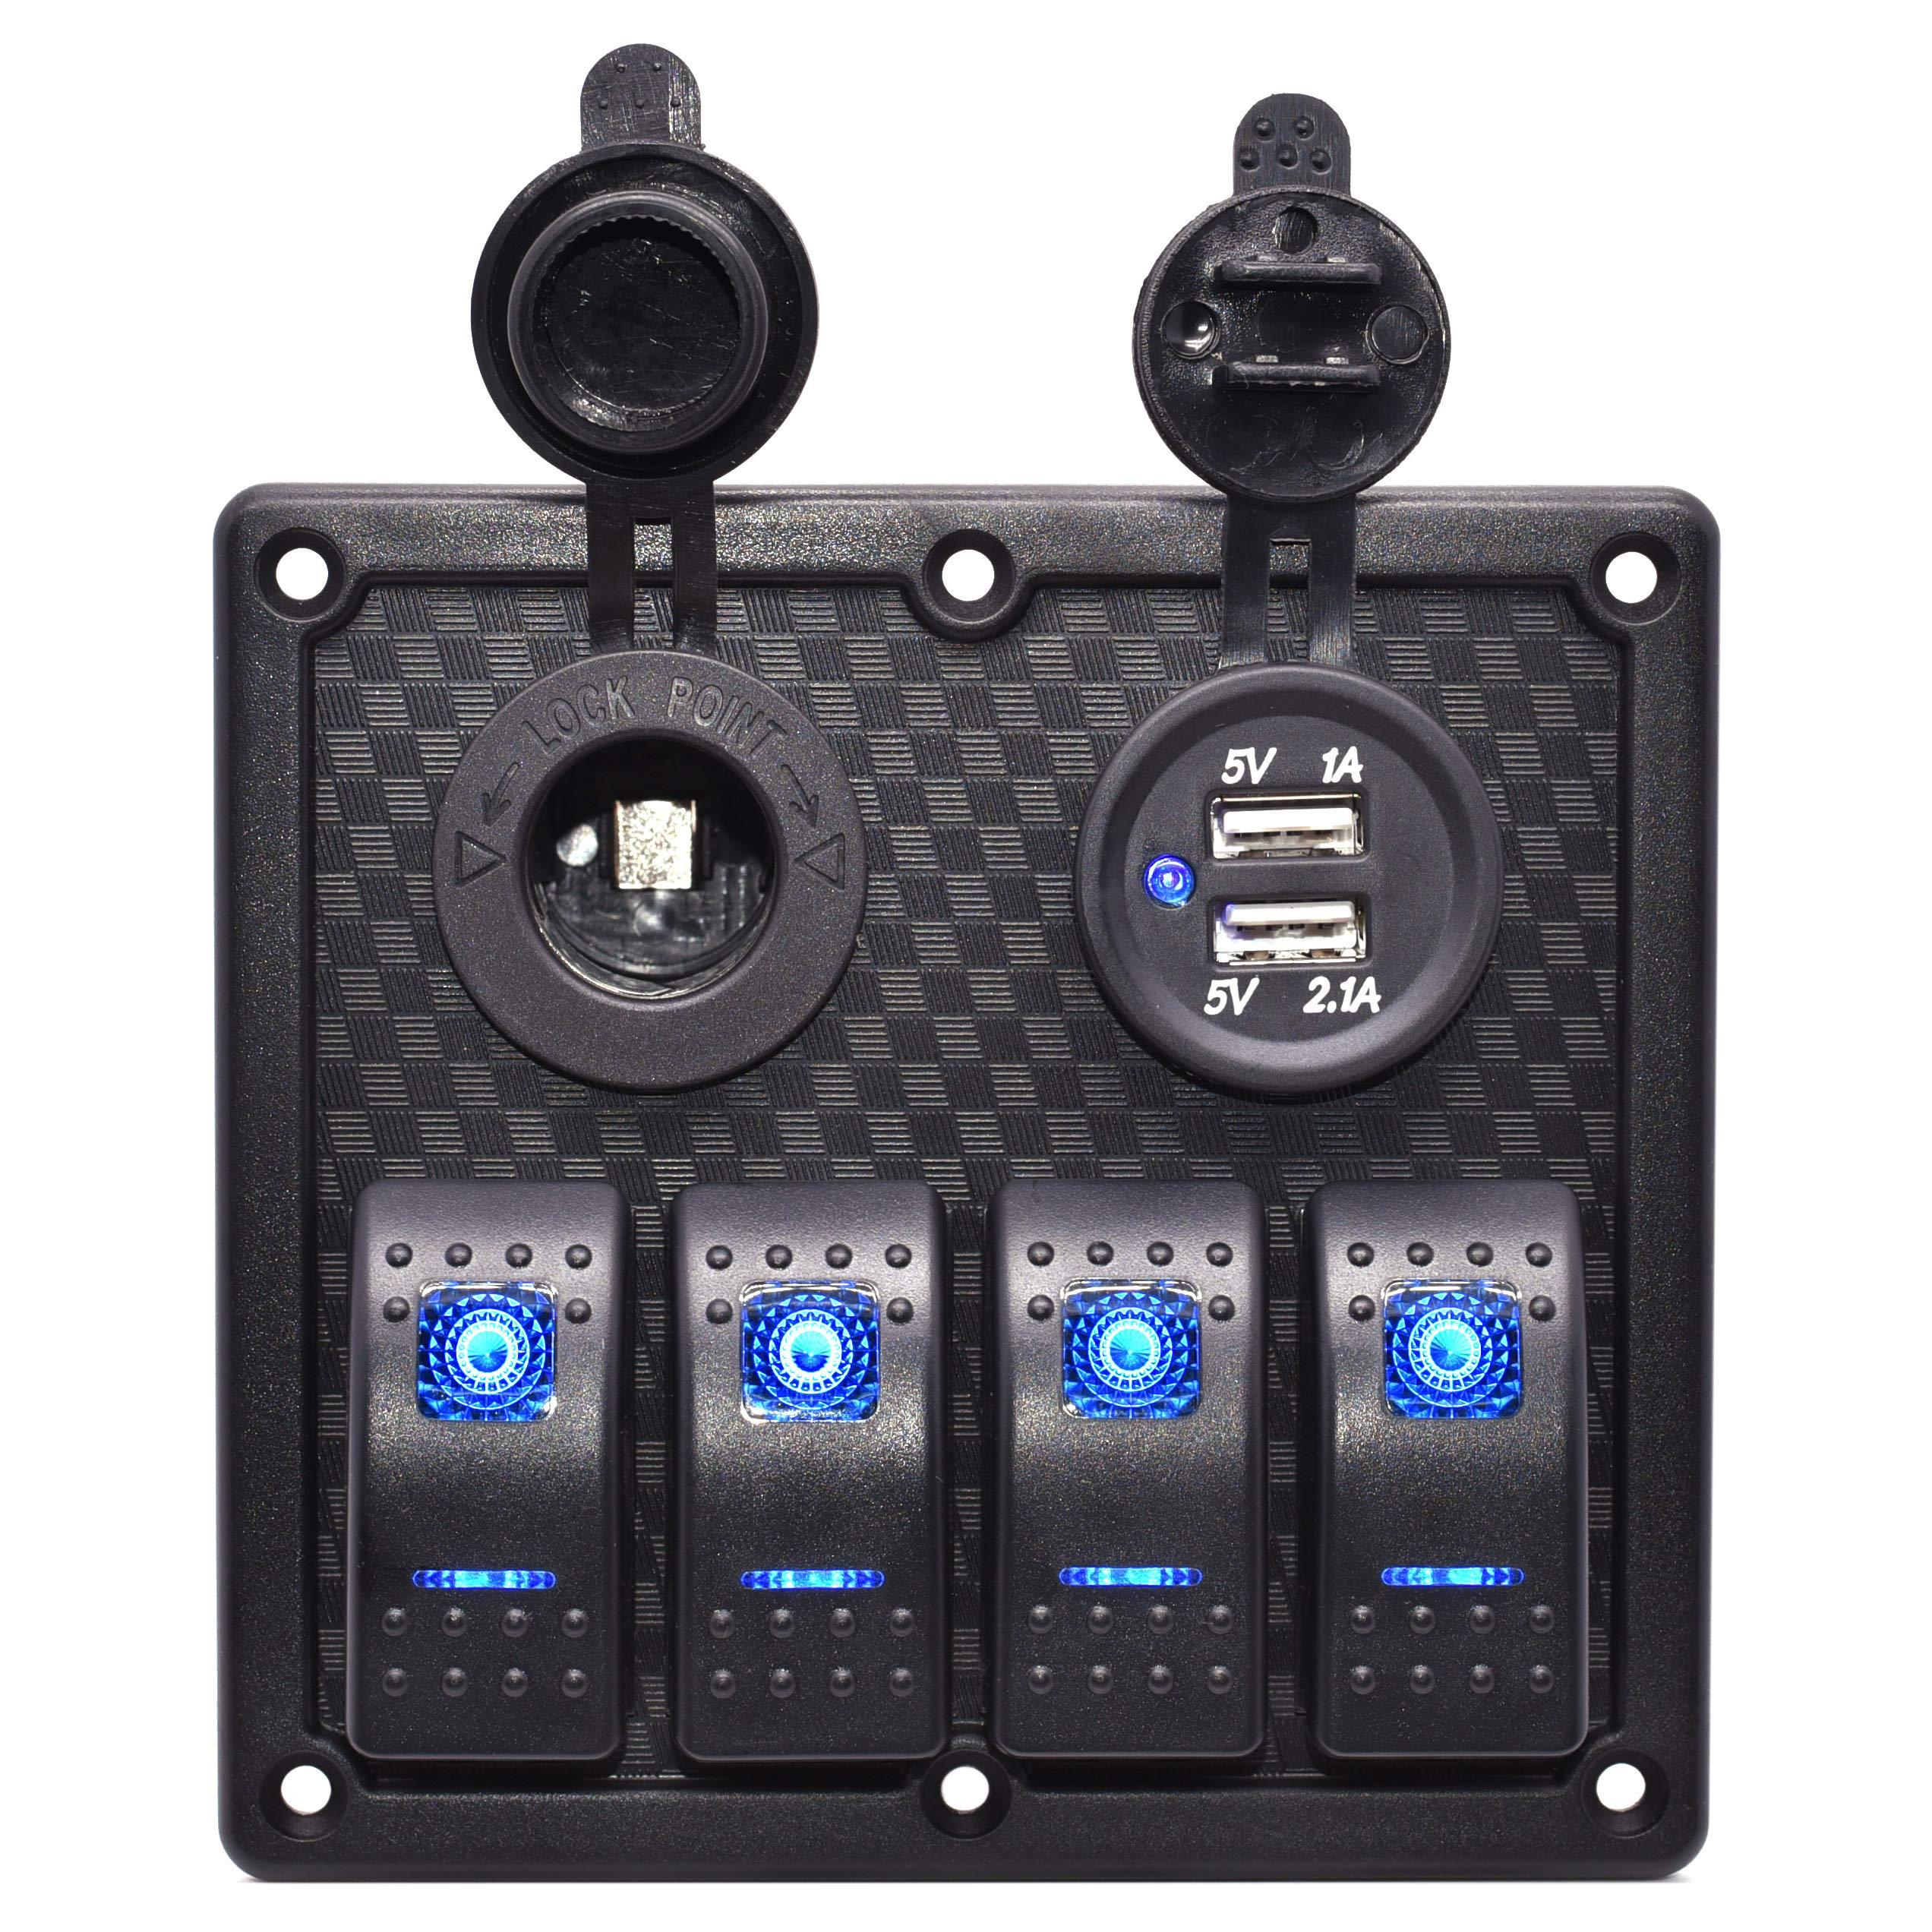 Cllena 4 Gang Marine Boat Rocker Switch Panel Whit Dual USB Charger Port + 12V Power Outlet Cigarette Lighter Socket for Car Marine Boat Rv ATV Truck Vehicles by Cllena